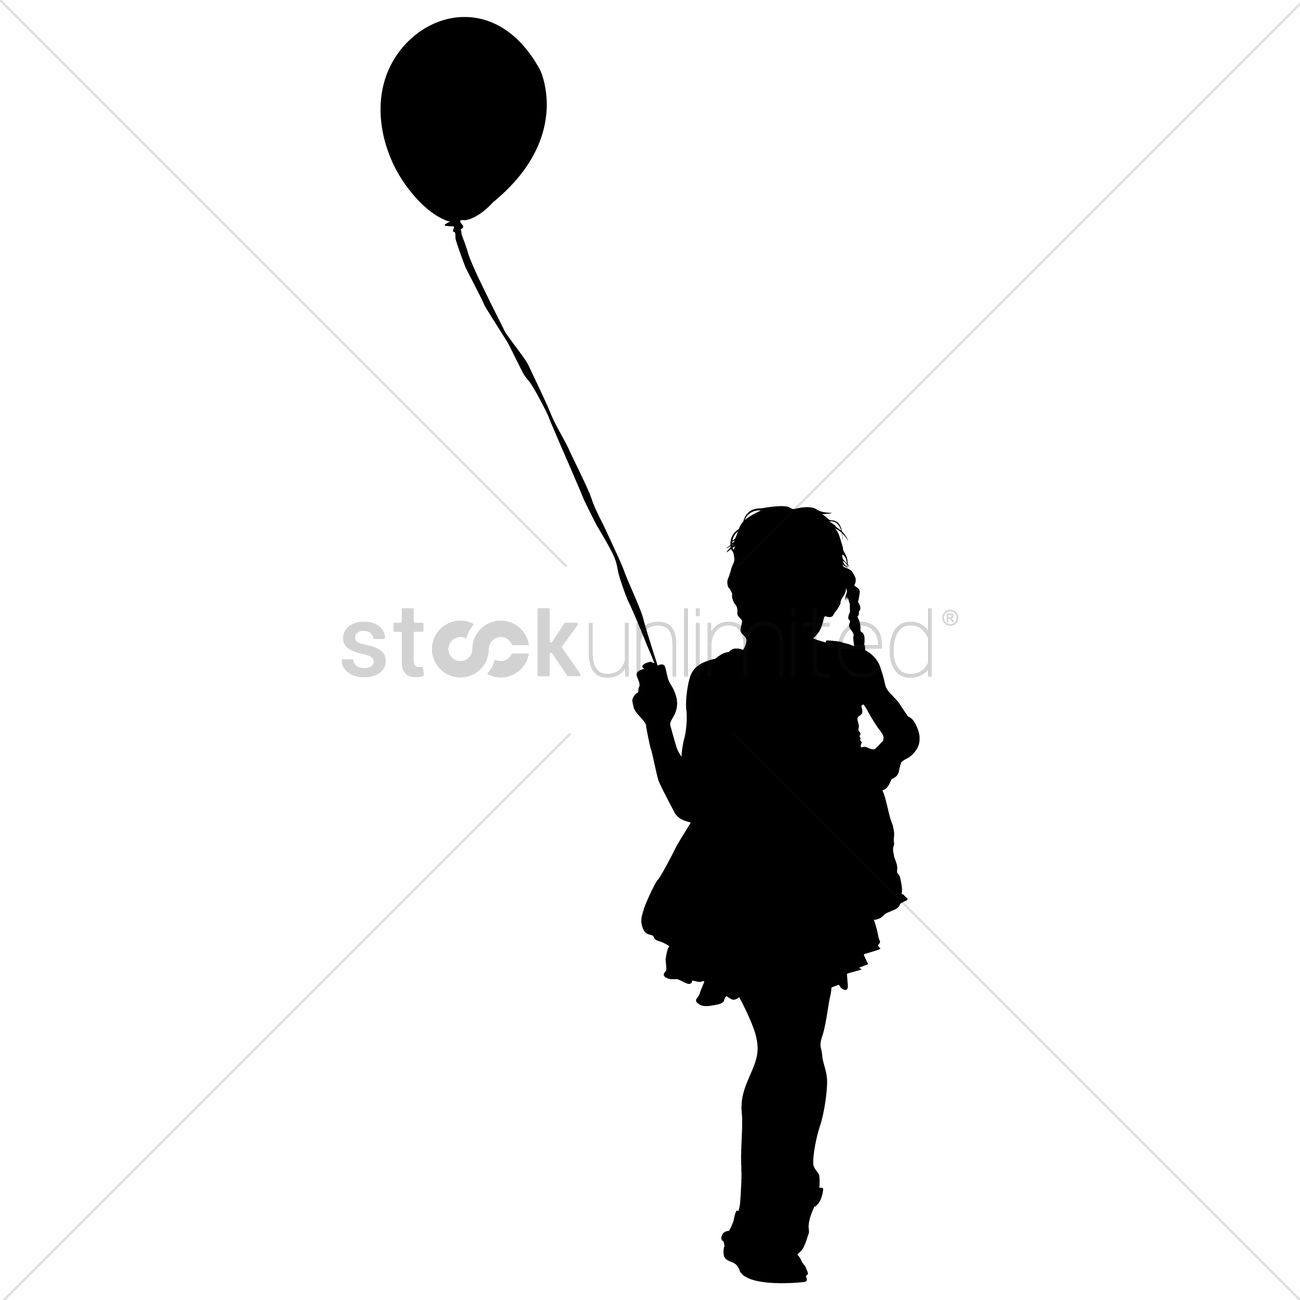 Silhouette Of A Girl Playing With Balloon Vector Image